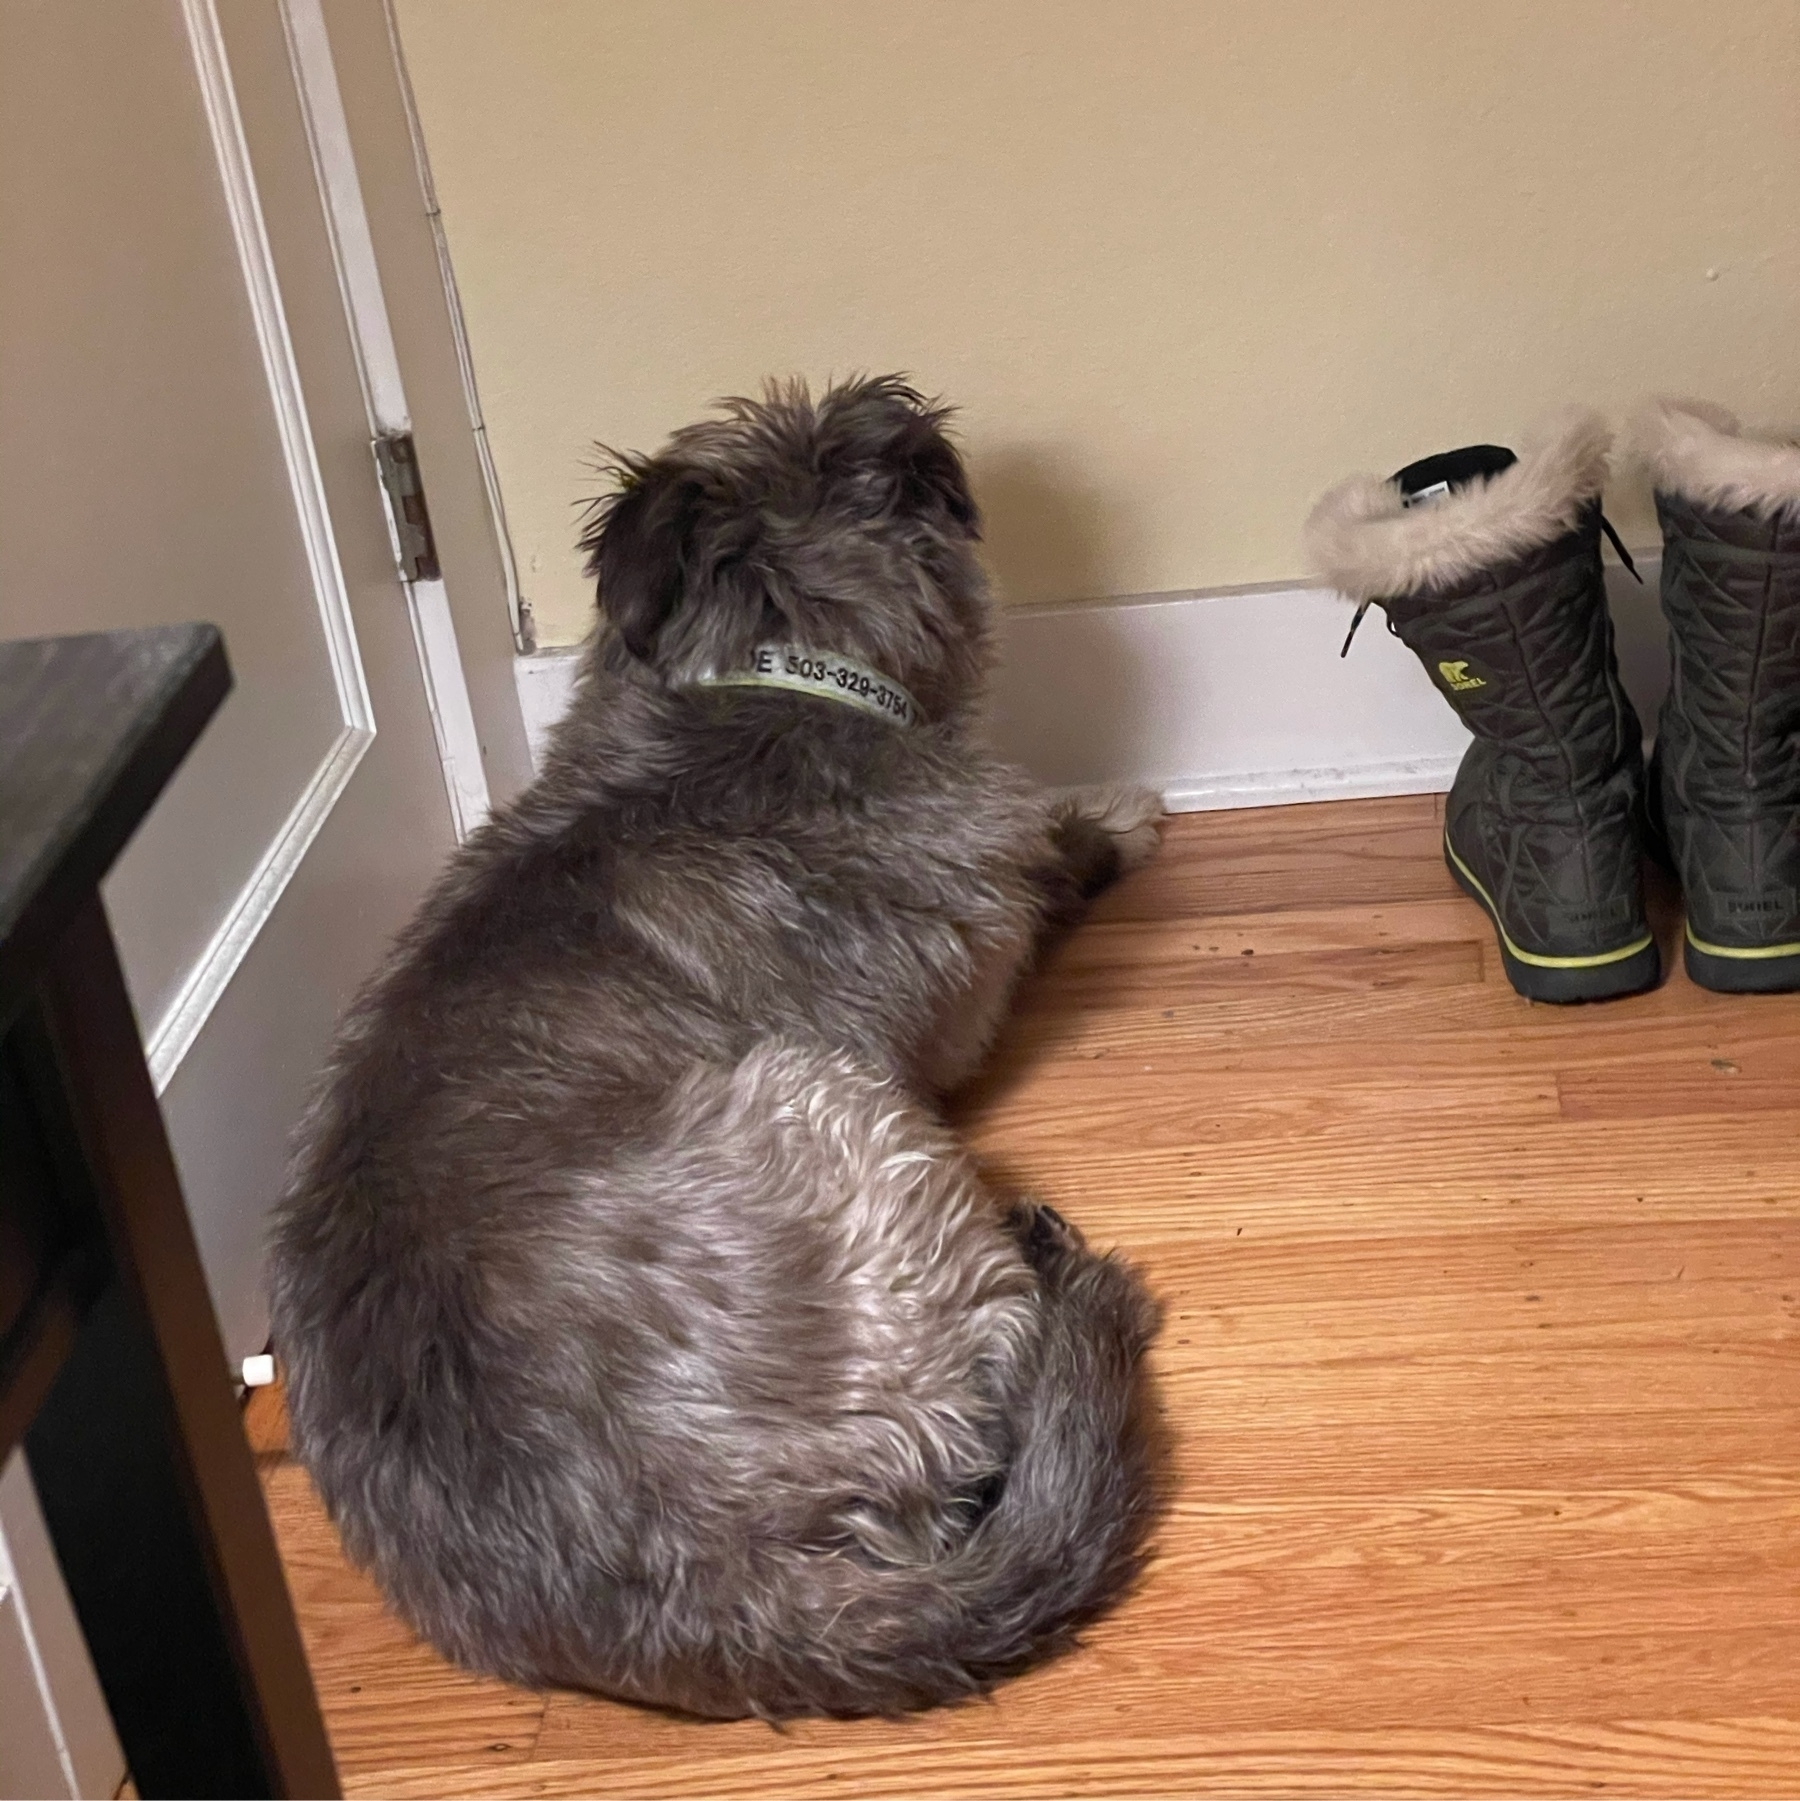 Dog sitting by the door, ready to escape.